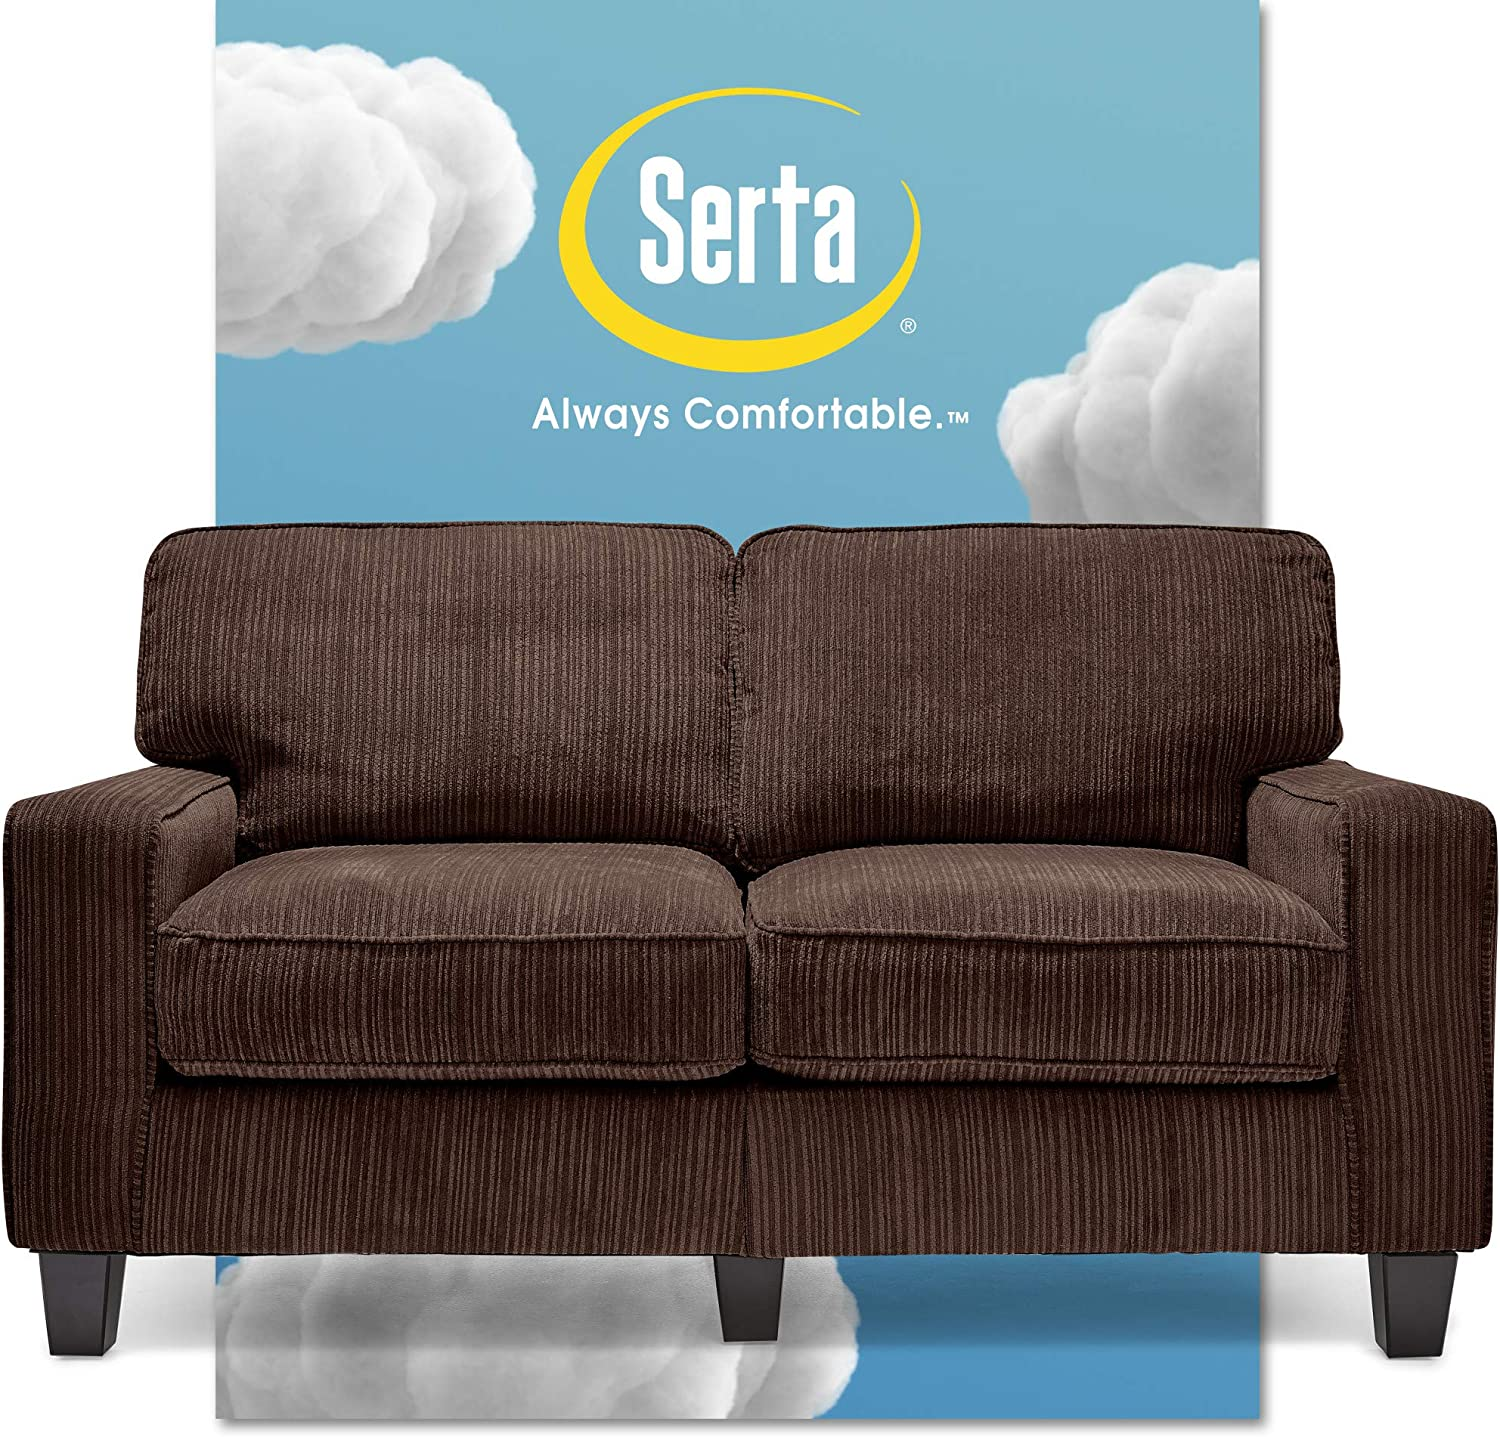 "Serta Palisades Upholstered Sofas for Living Room Modern Design Couch, Straight Arms, Soft Fabric Upholstery, Tool-Free Assembly, 61"" Loveseat, Brown"